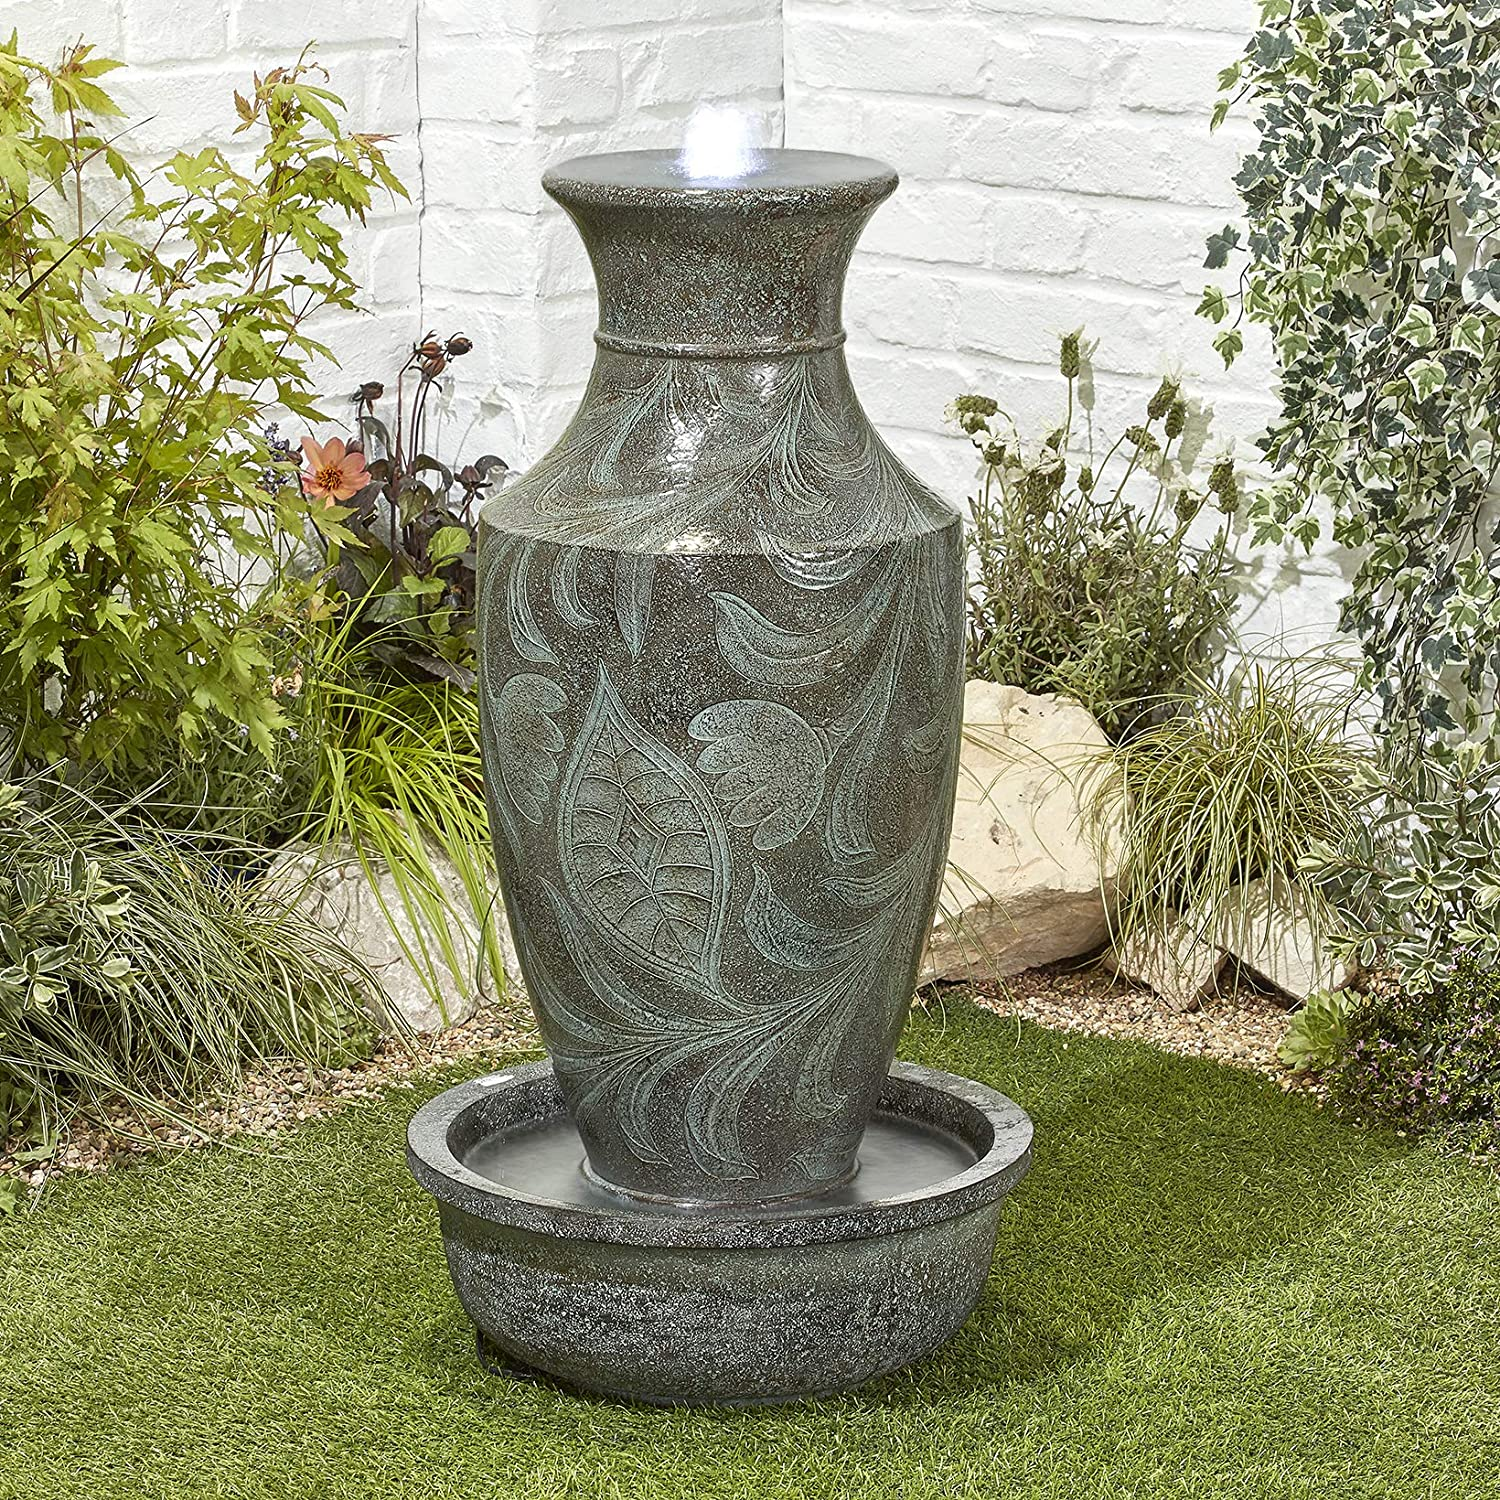 BillyOh Classic Urn Outdoor Garden Water Feature with Pump & LED lights 82x44x44cm